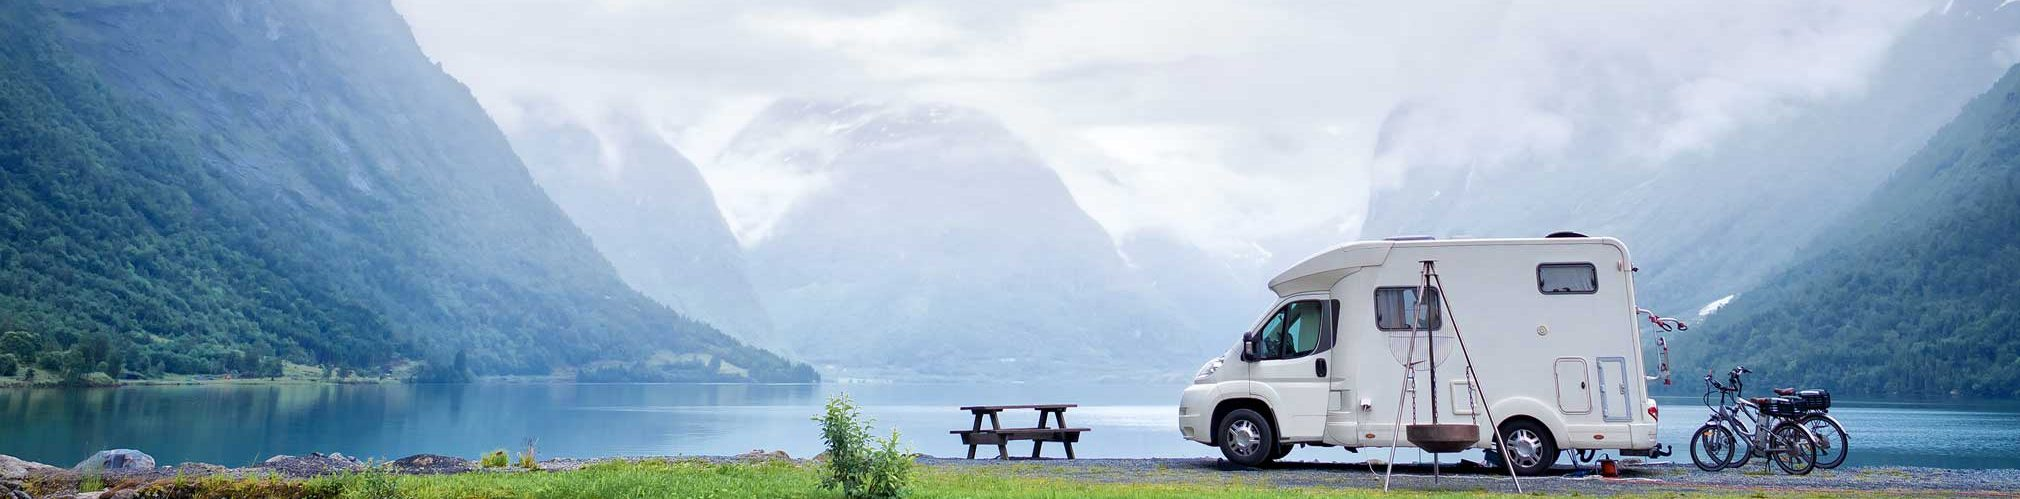 Finding Propane for an RV Appliance Analysts